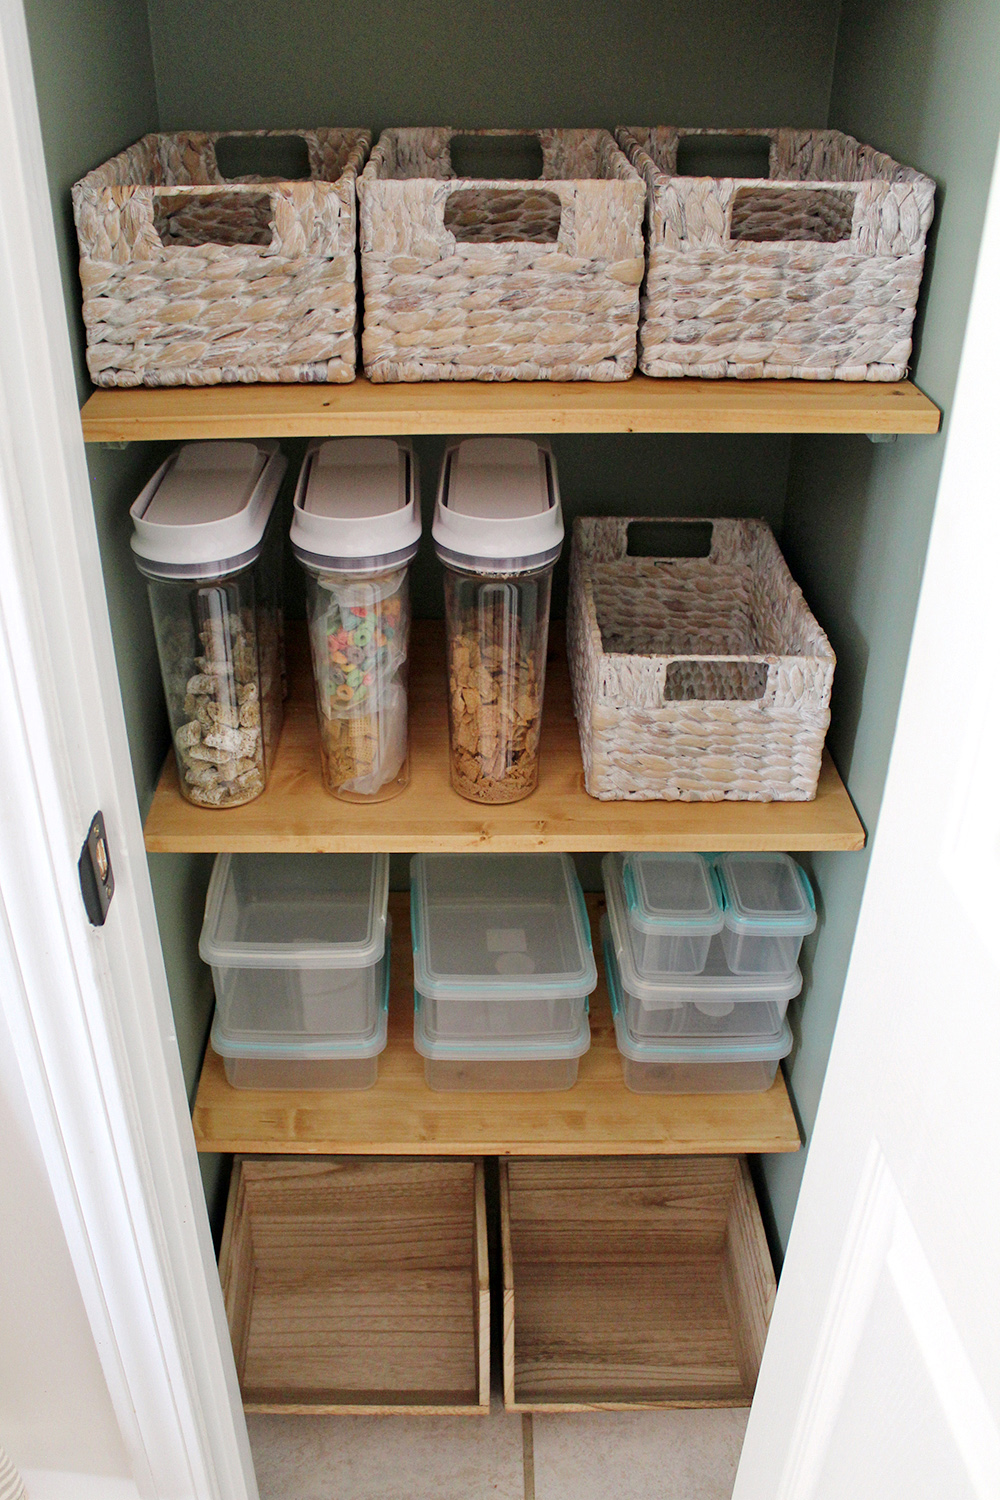 Plan before placing food back in the pantry